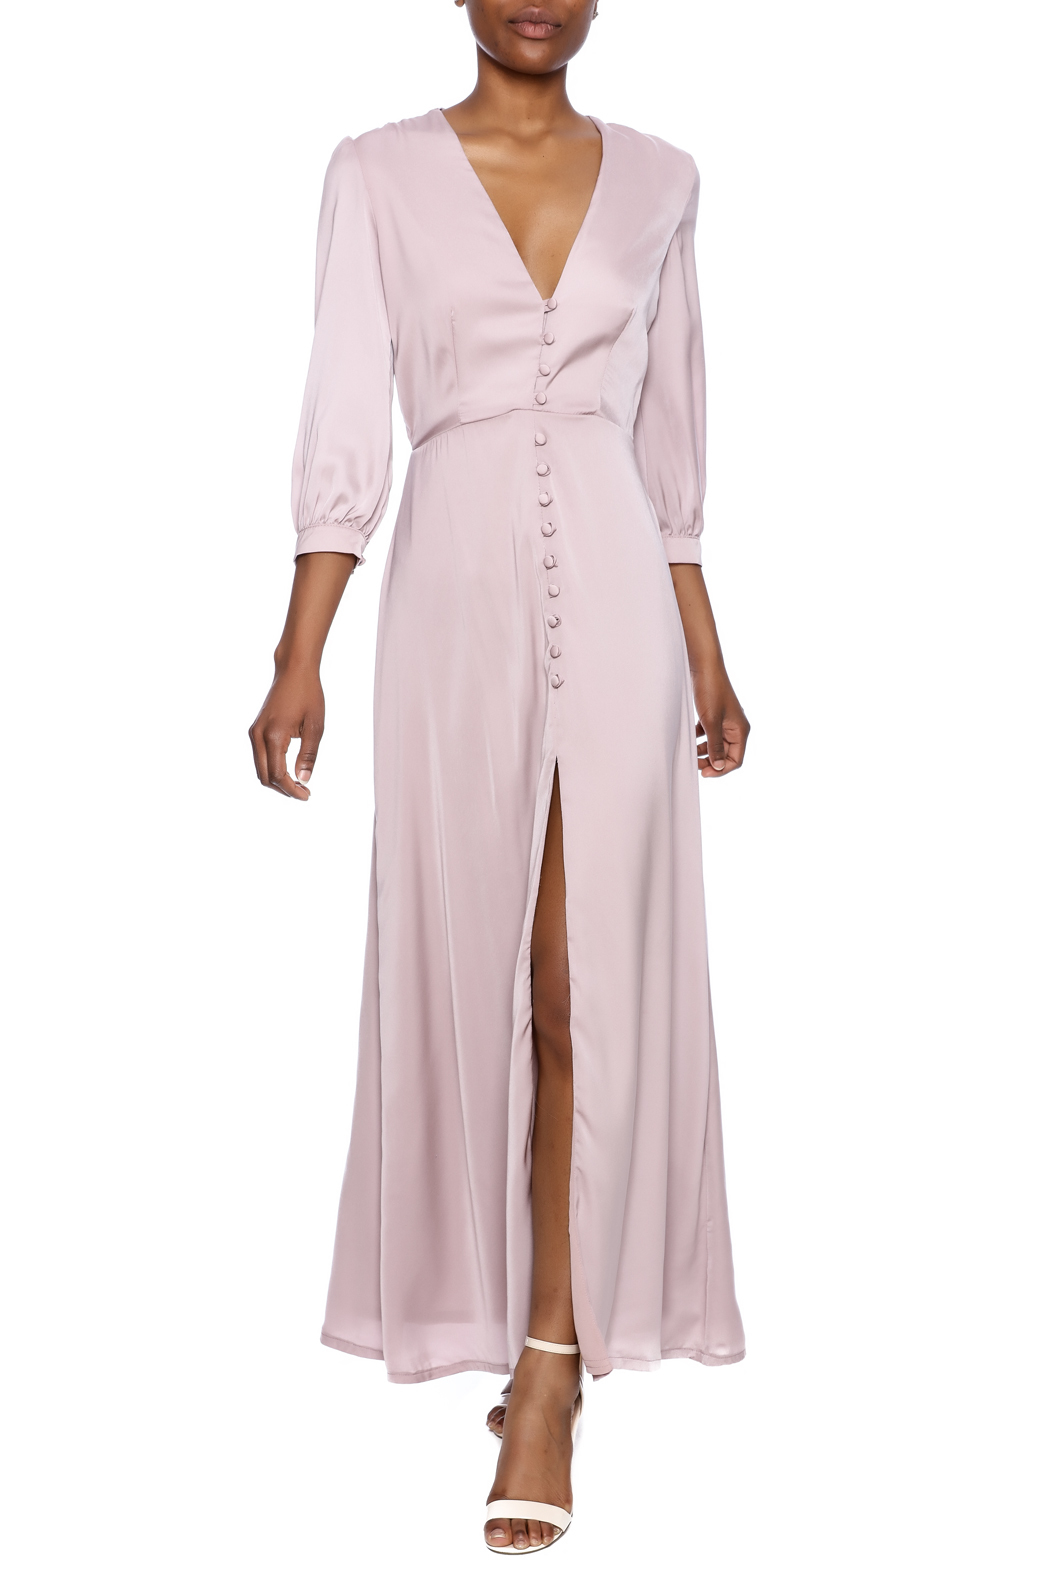 Oh My Love Maxi Tea Dress From New Orleans By Kay S Shoptiques